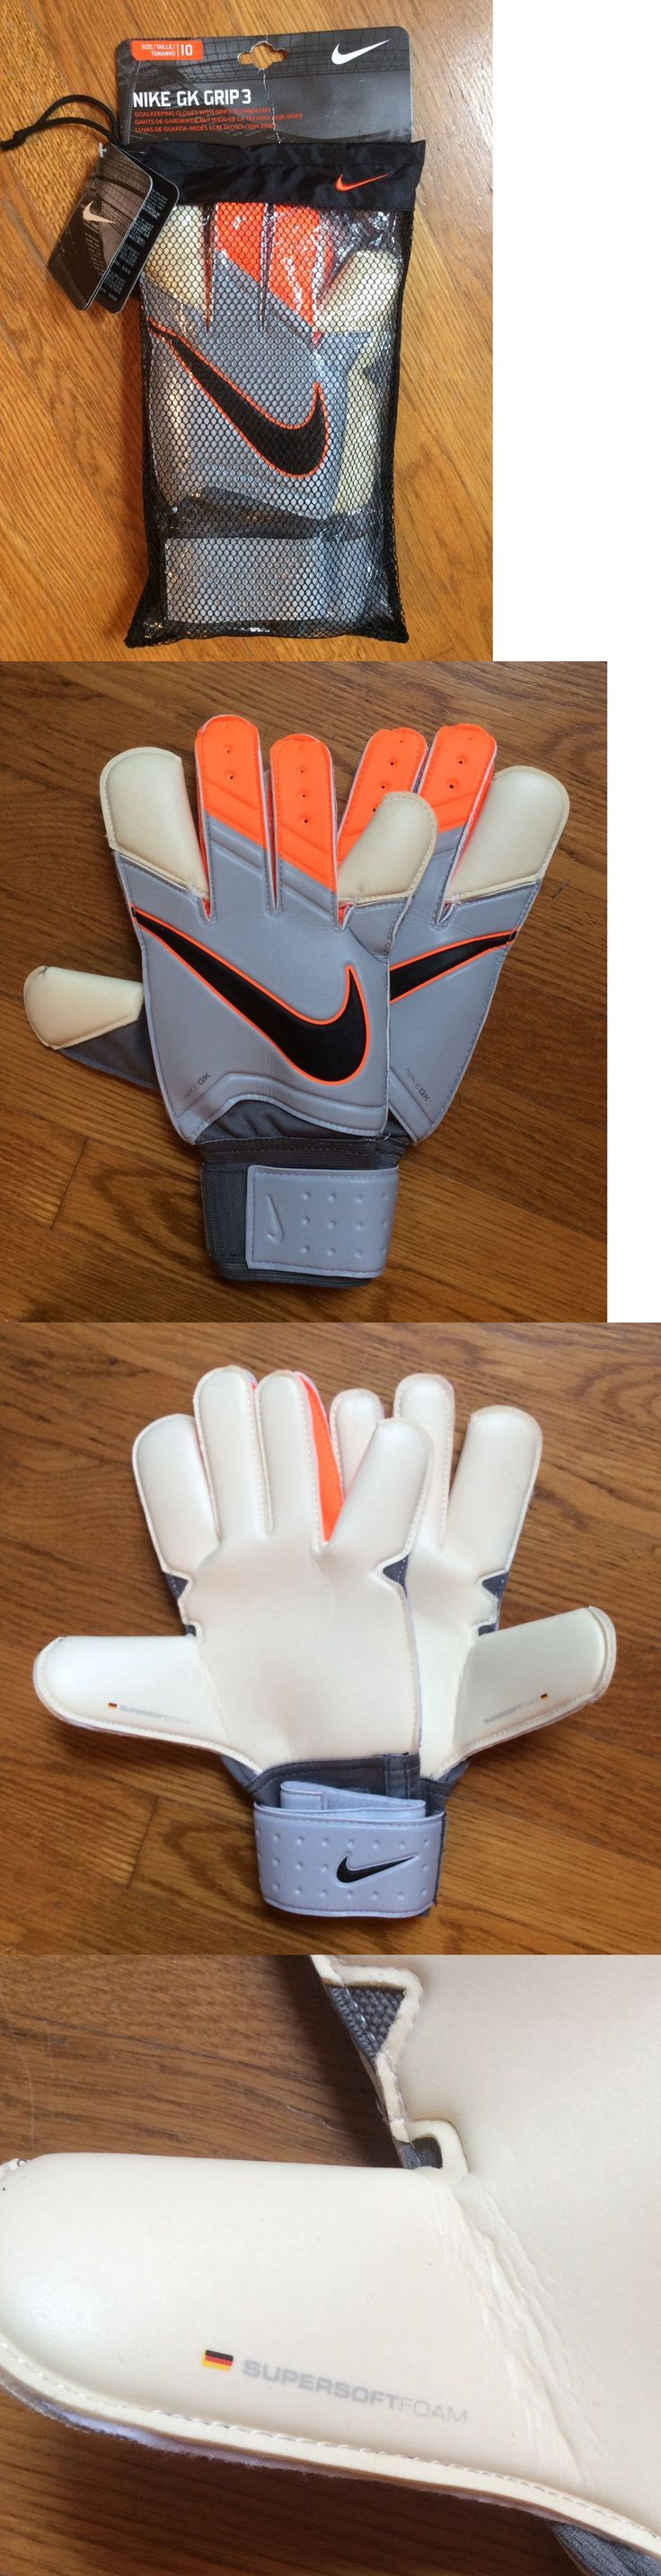 Driving gloves argos - Gloves 57277 Nwt Nike Gk Grip 3 Soccer Goalie Gloves Gs0279 Adult Unisex 10 Or